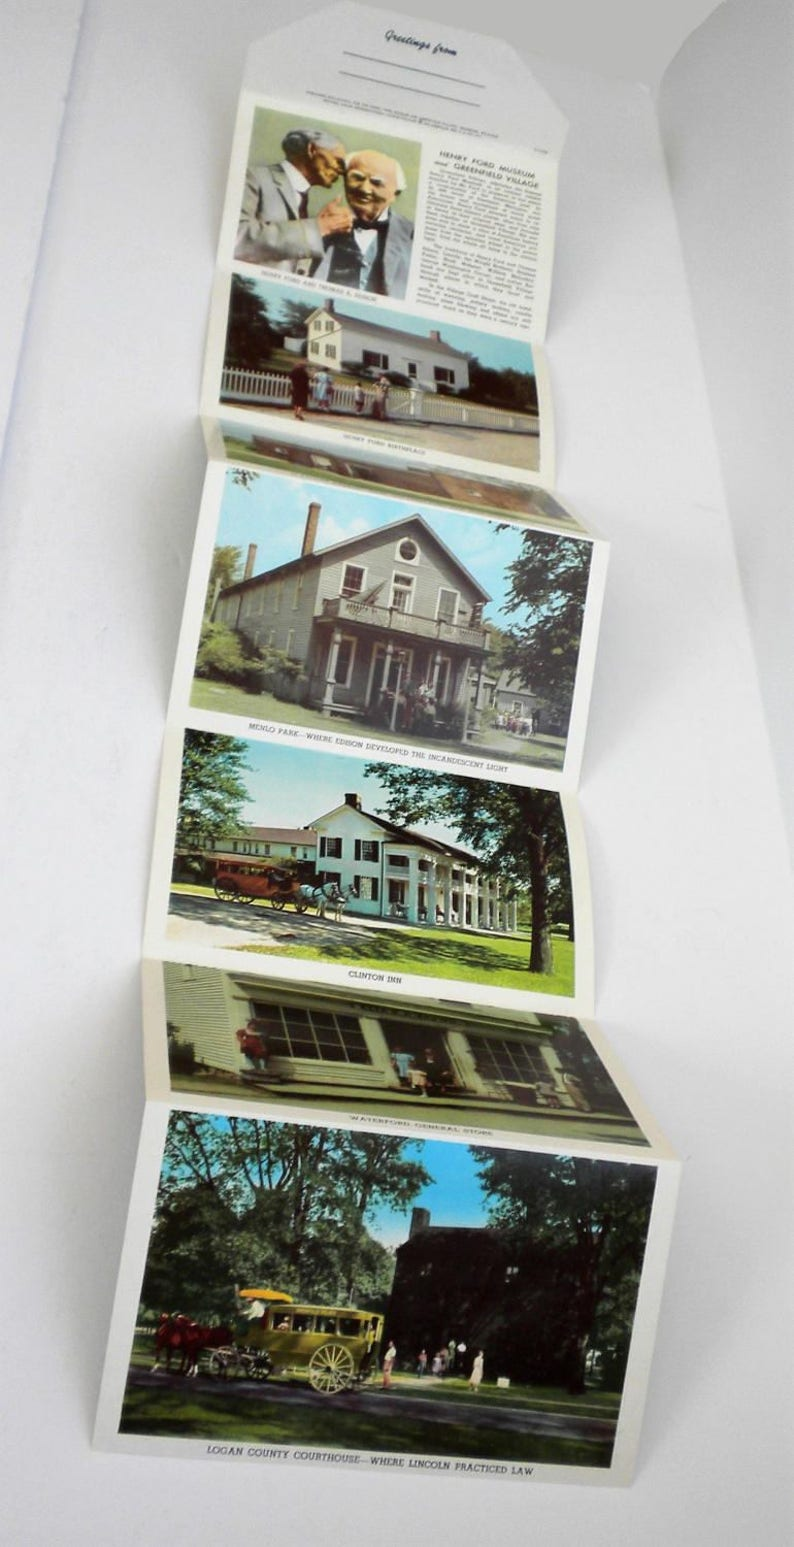 Thomas Edison Vintage Post Card Curt Teich /& Co Michigan 1957 Vintage Henry Ford Museum and Greenfield Village Postcard Folder Dearborn